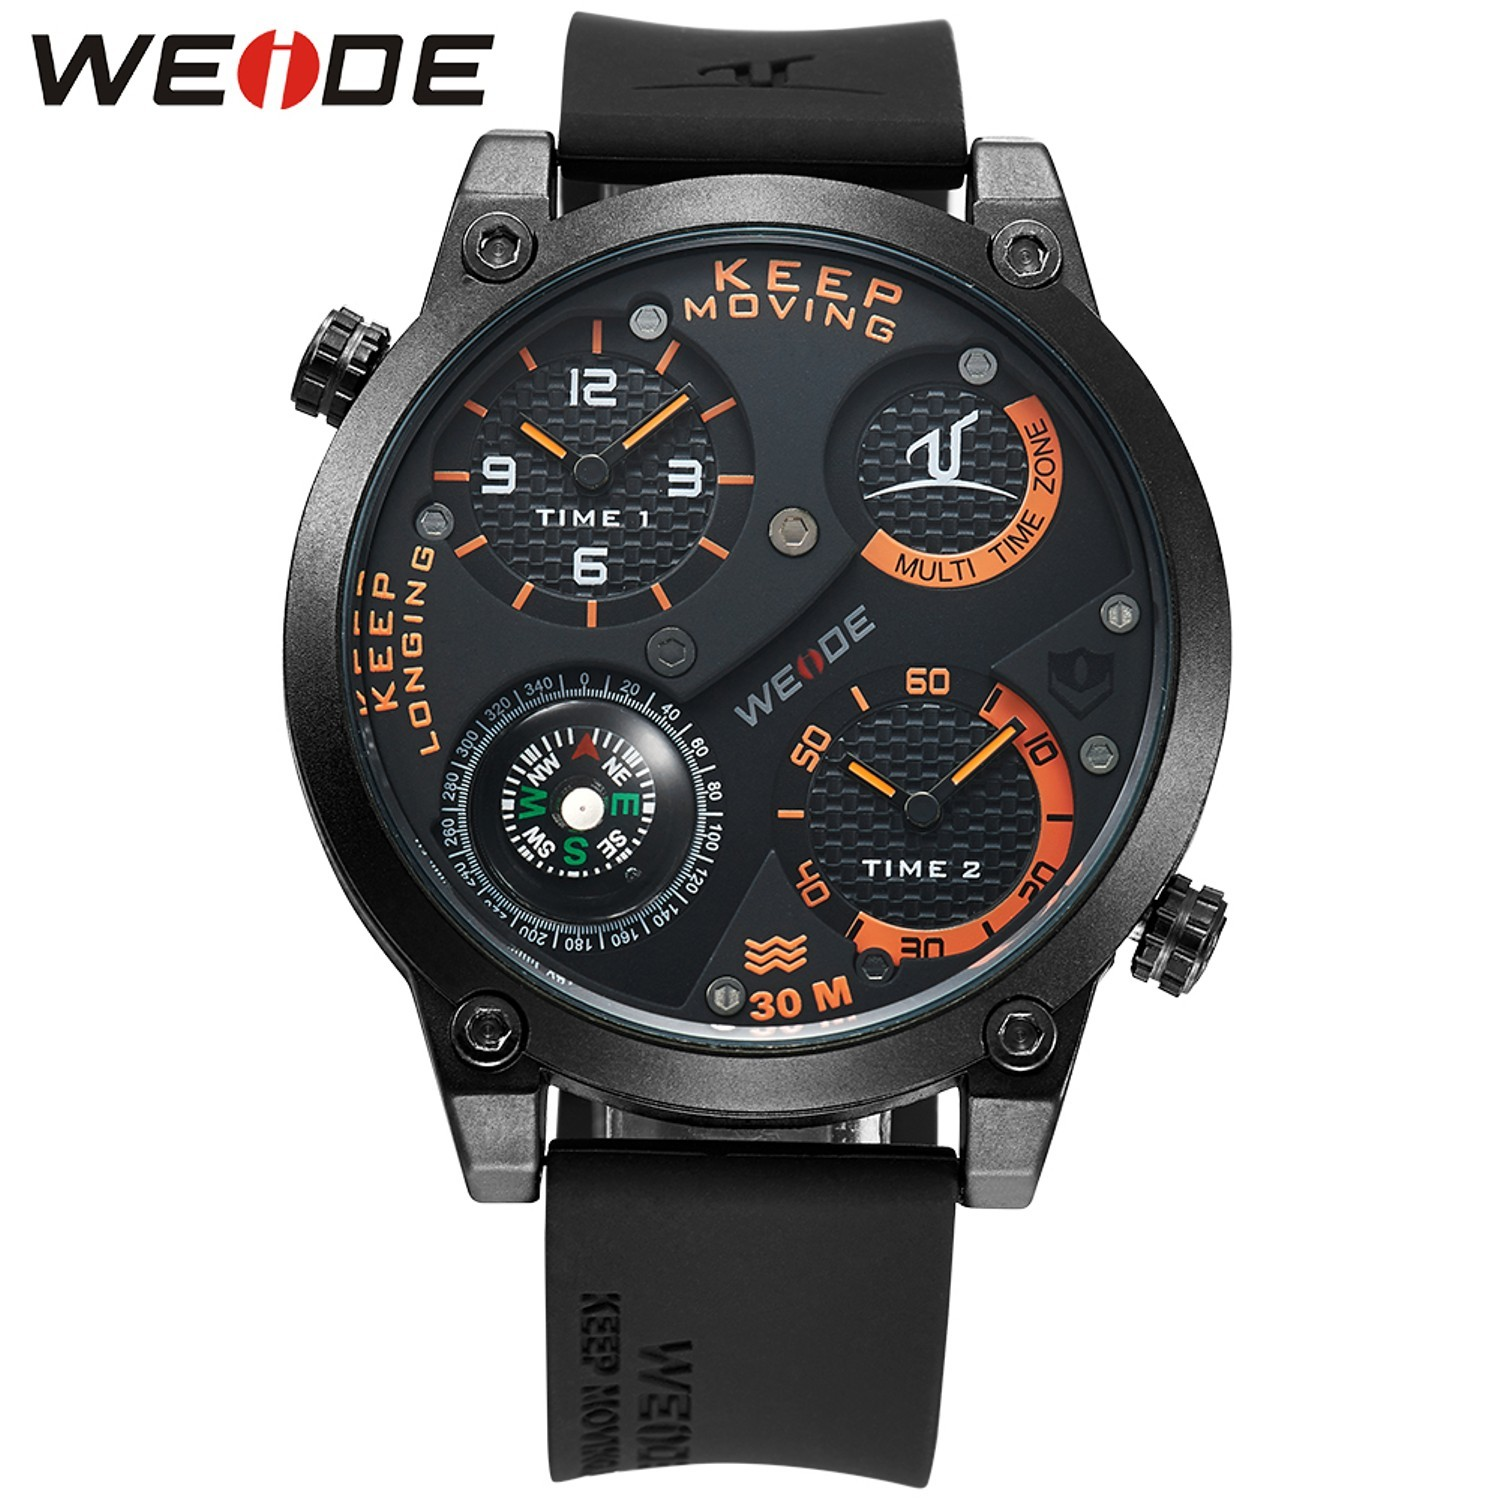 WEIDE-Sports-Watch-Compass-Analog-Japan-Movement-Silicone-Strap-Buckle-Army-Waterproof-Men-s-Outdoor-Quartz_1500x1500_STRETCH_288.jpg